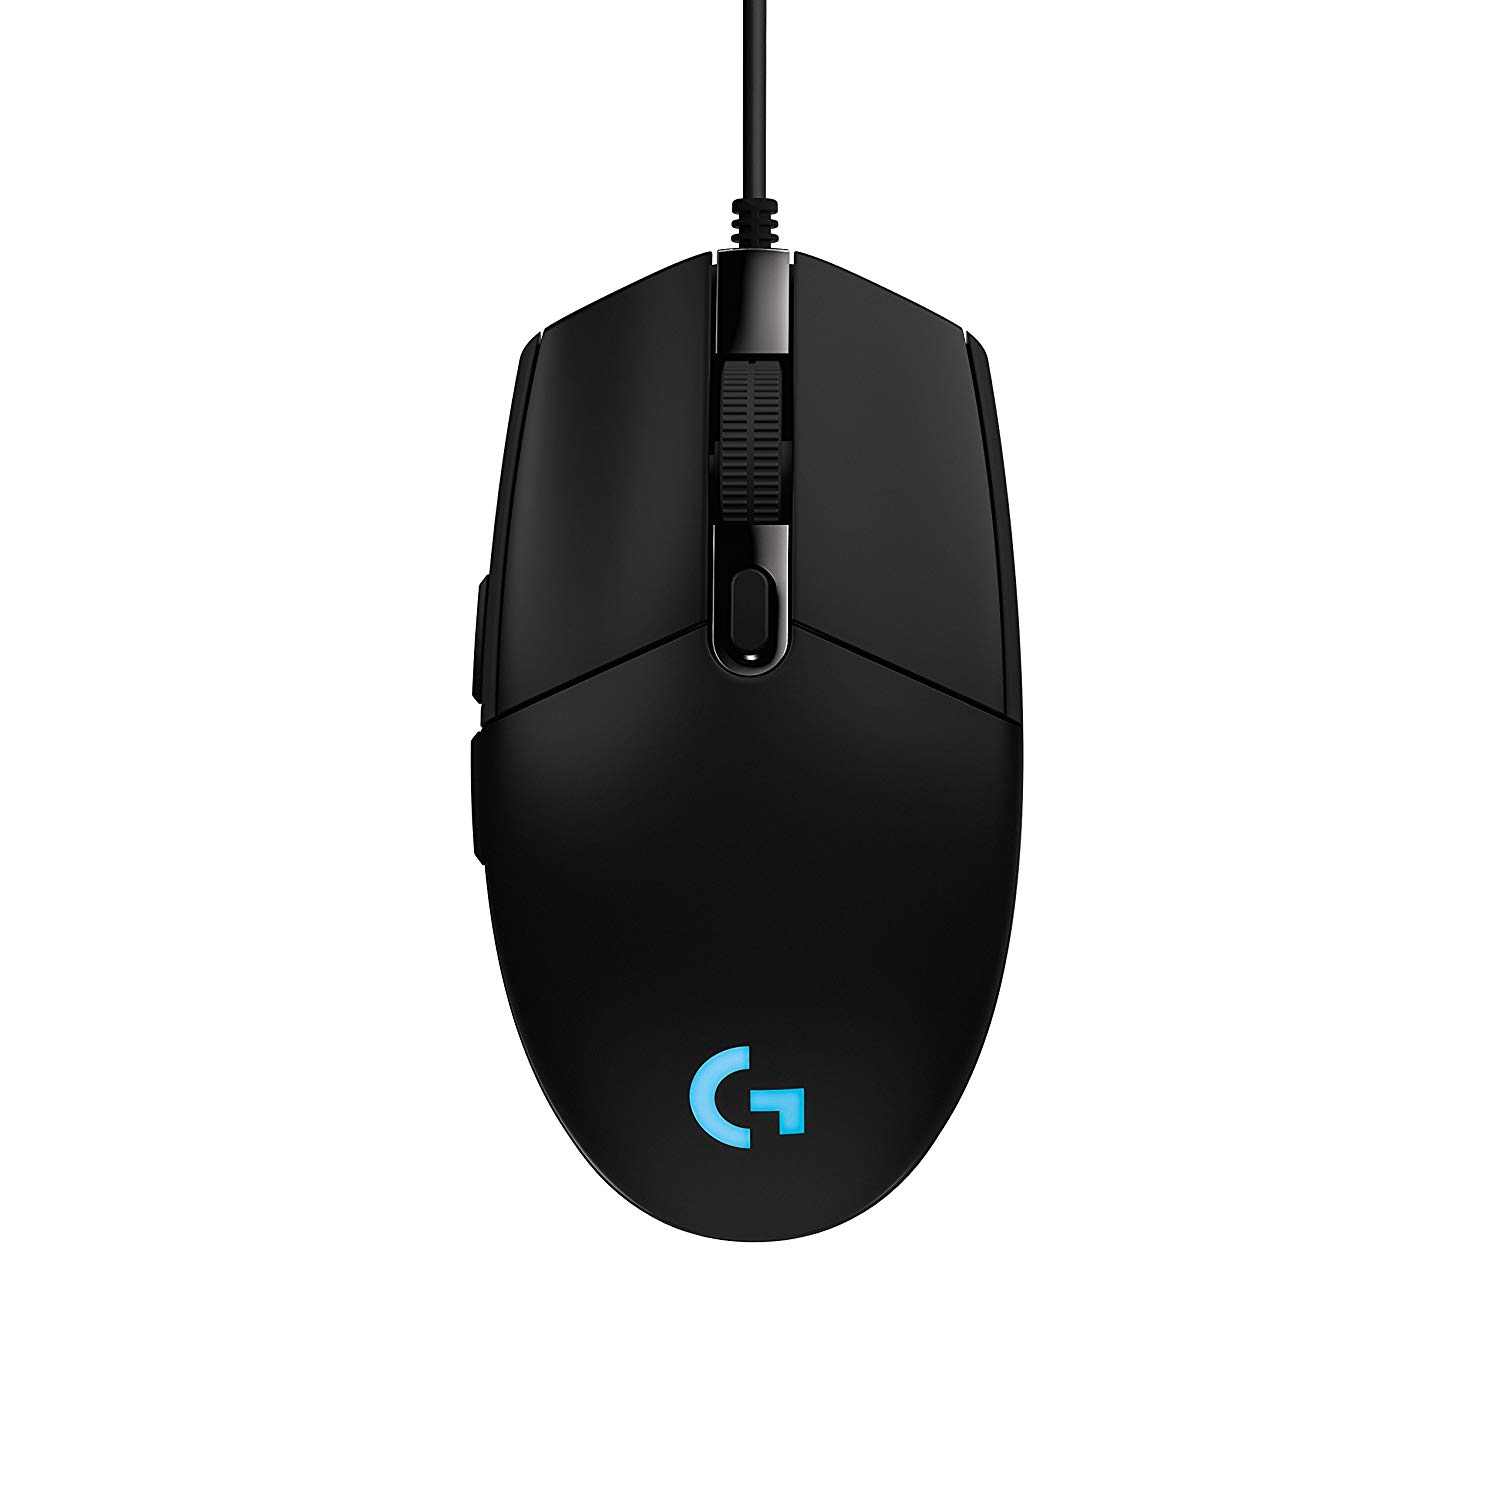 best gaming mouse under 50 - Number 2 Logitech G203 Prodigy